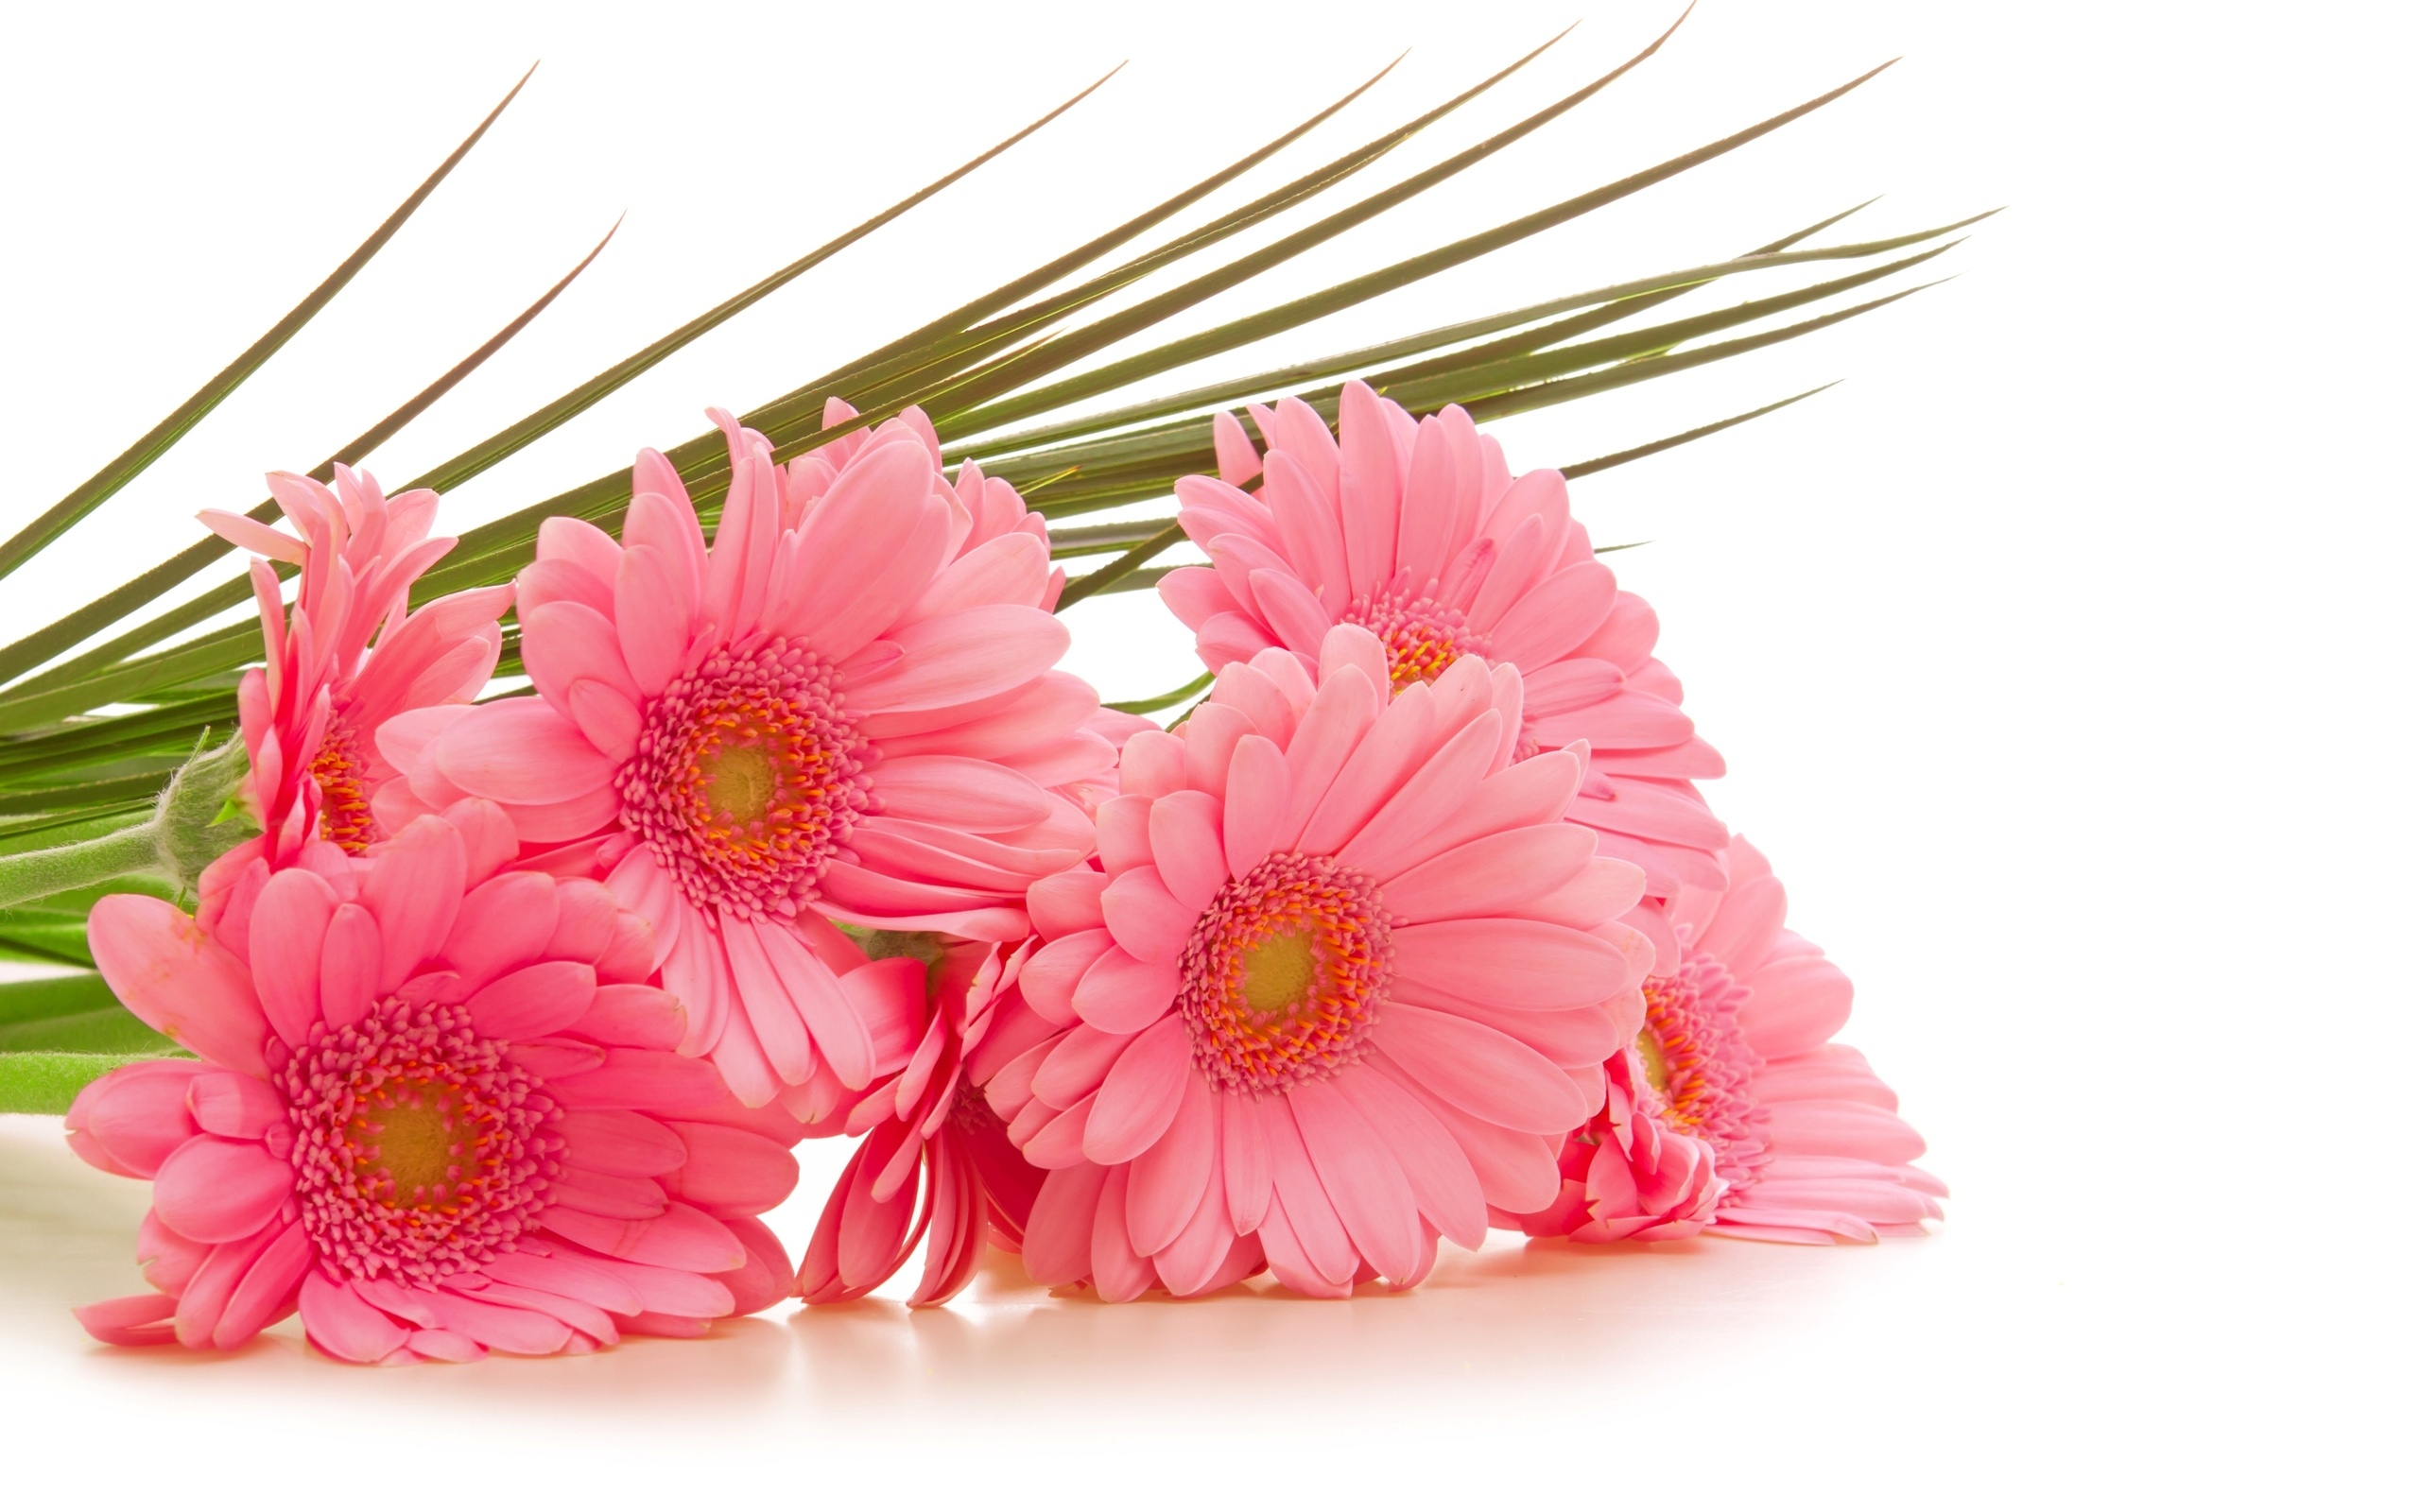 Gerbera pink flowers 2560 x 1600 download close